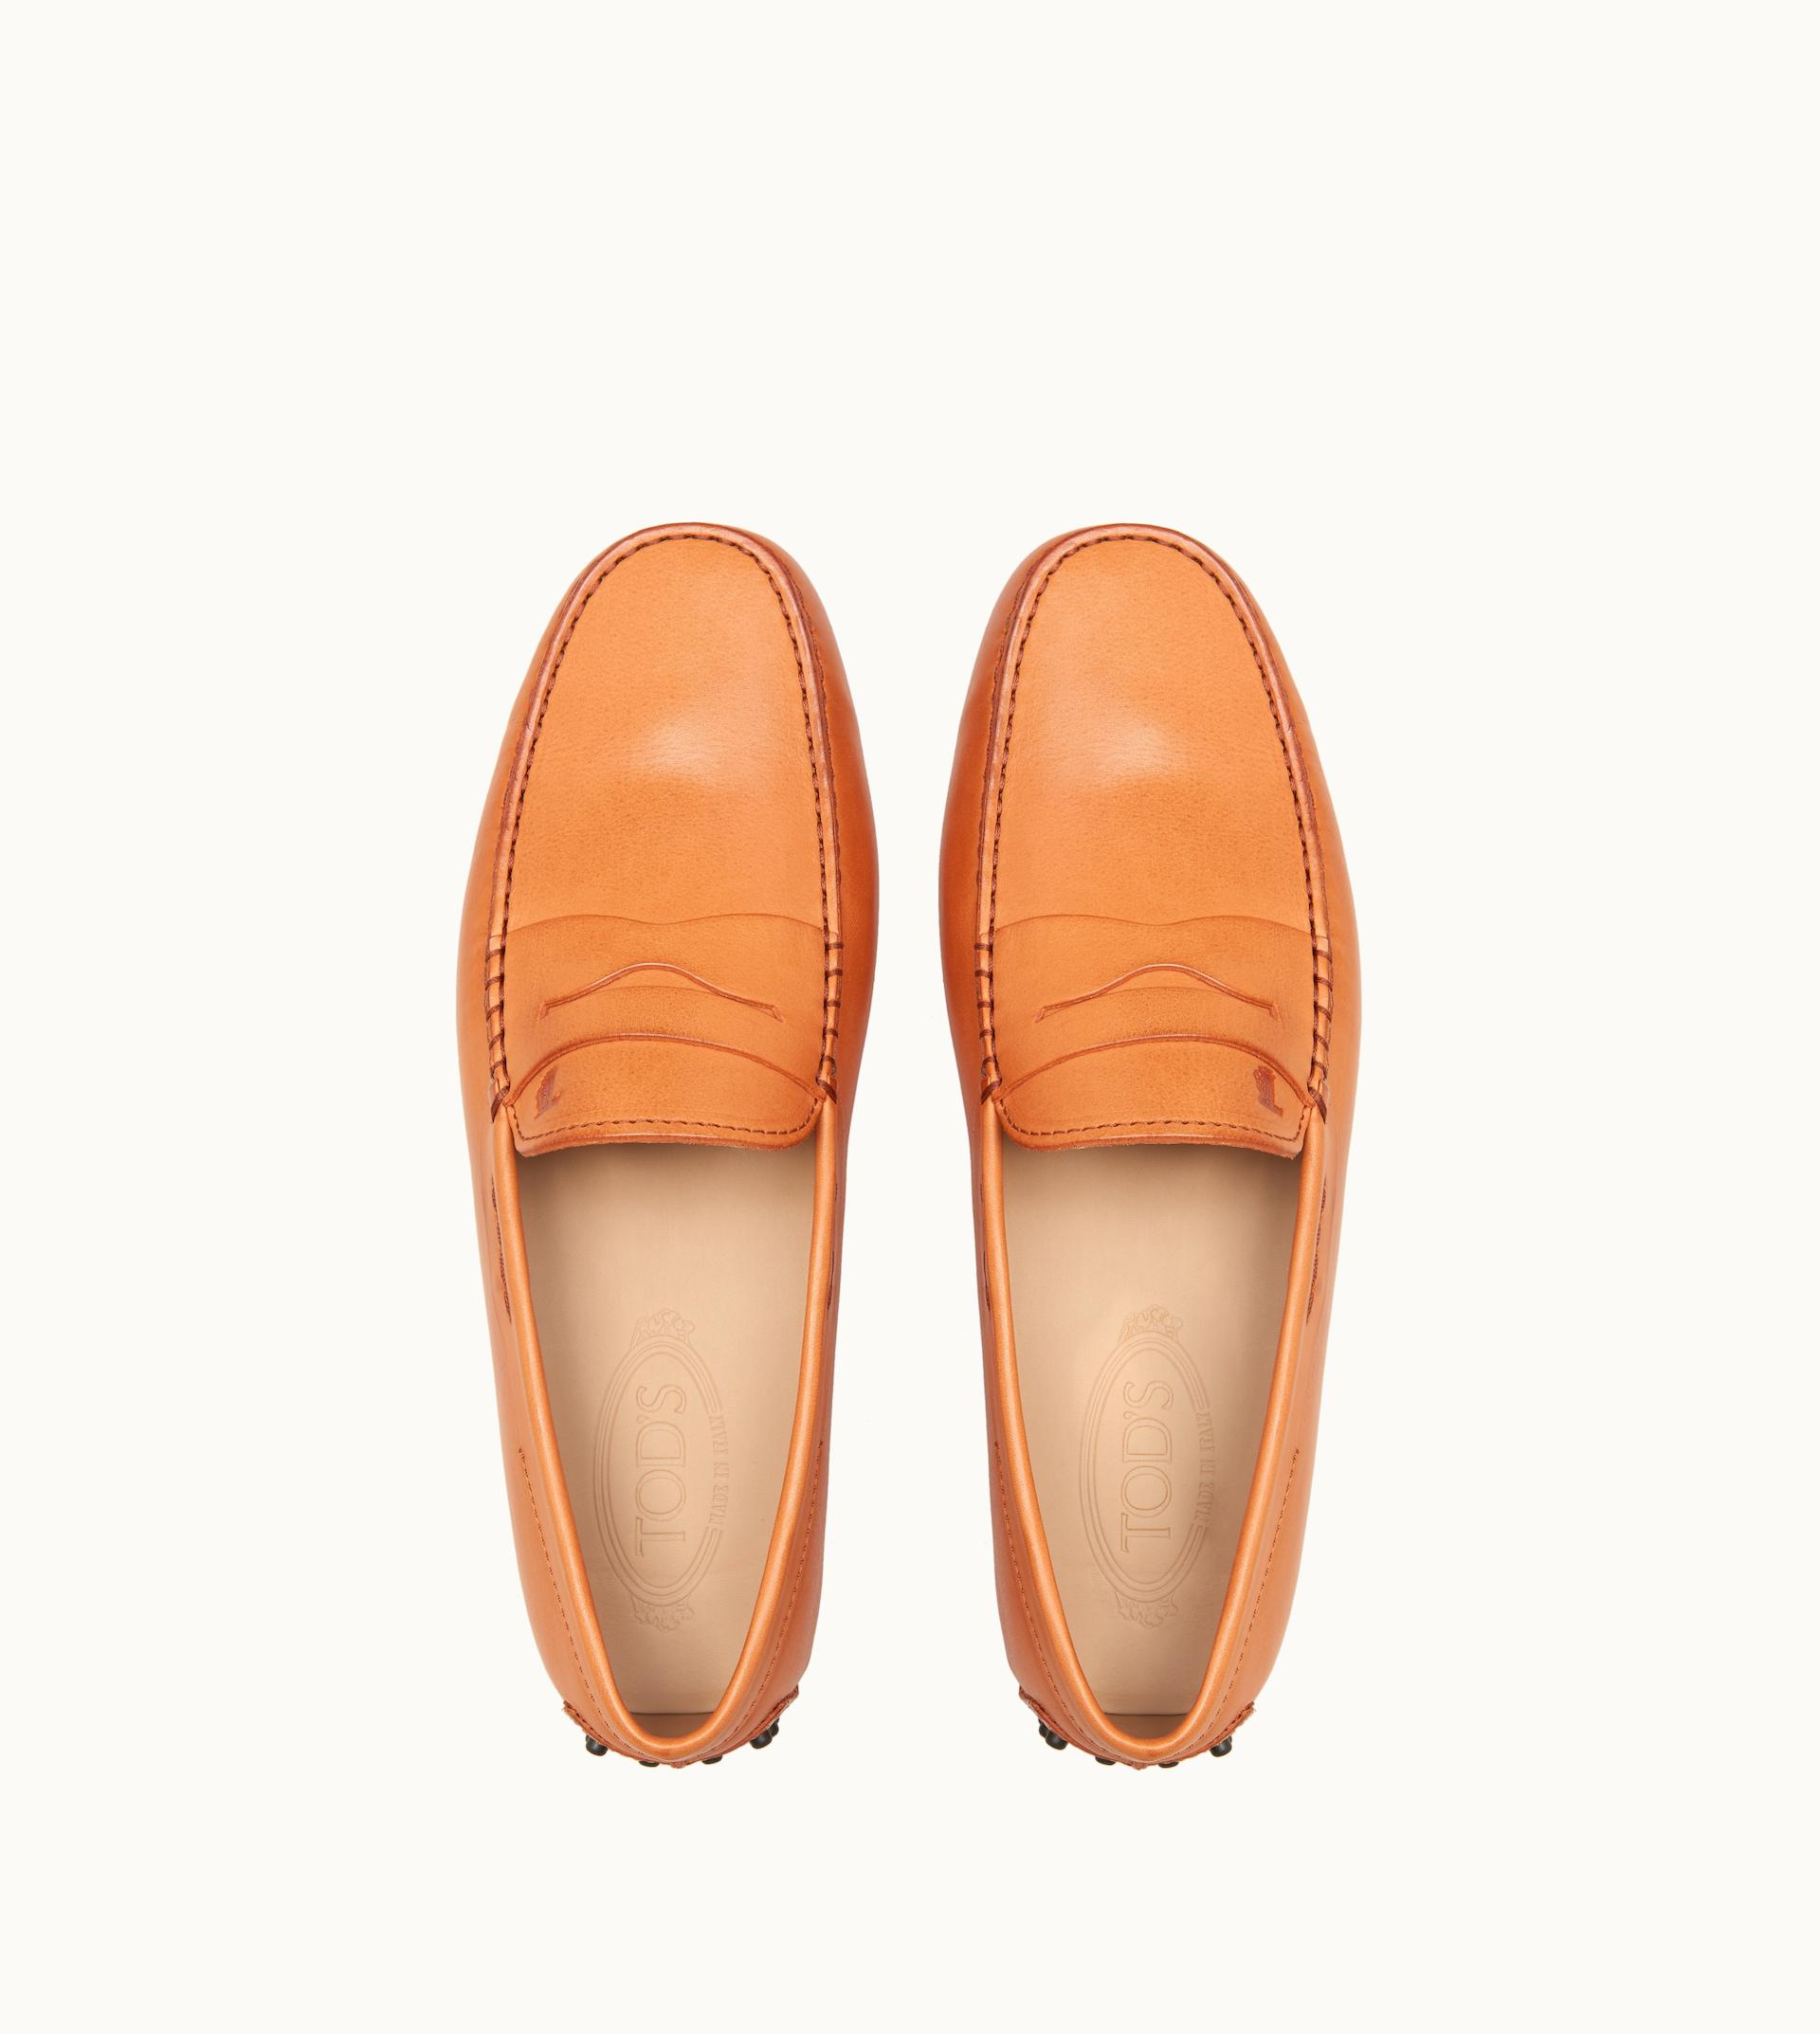 4d9cf42fe2c Tod s - Orange Gommino Driving Shoes In Leather for Men - Lyst. View  fullscreen